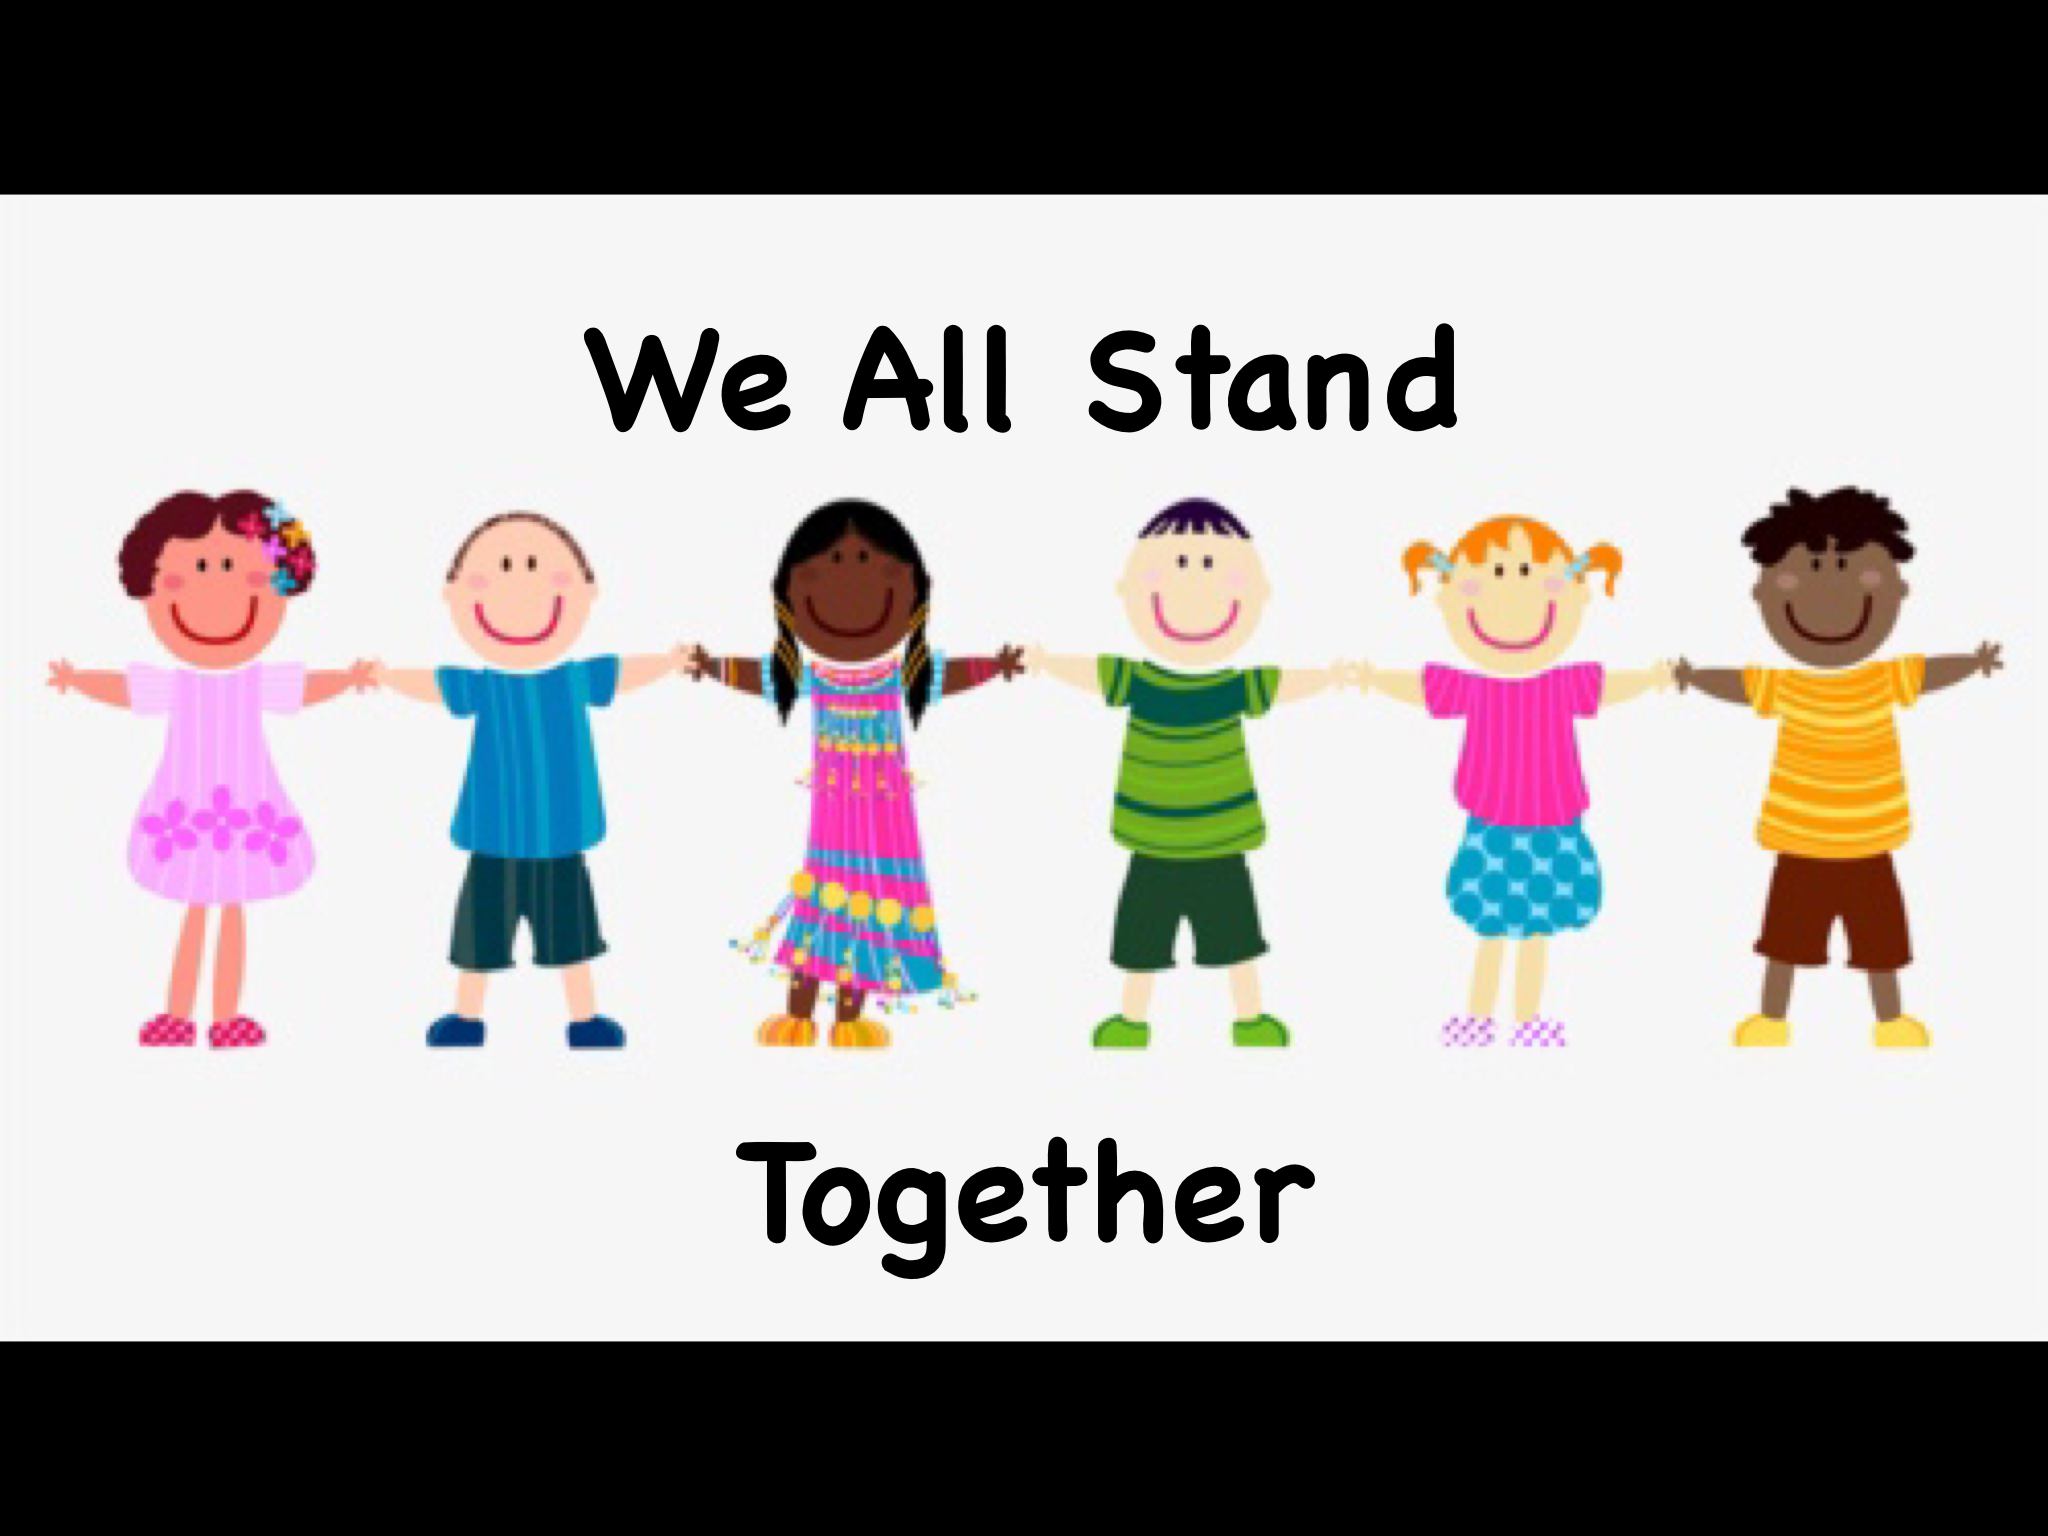 👩🏾‍🤝‍👨🏿 We All Stand Together 👩🏽‍🤝‍👨🏼